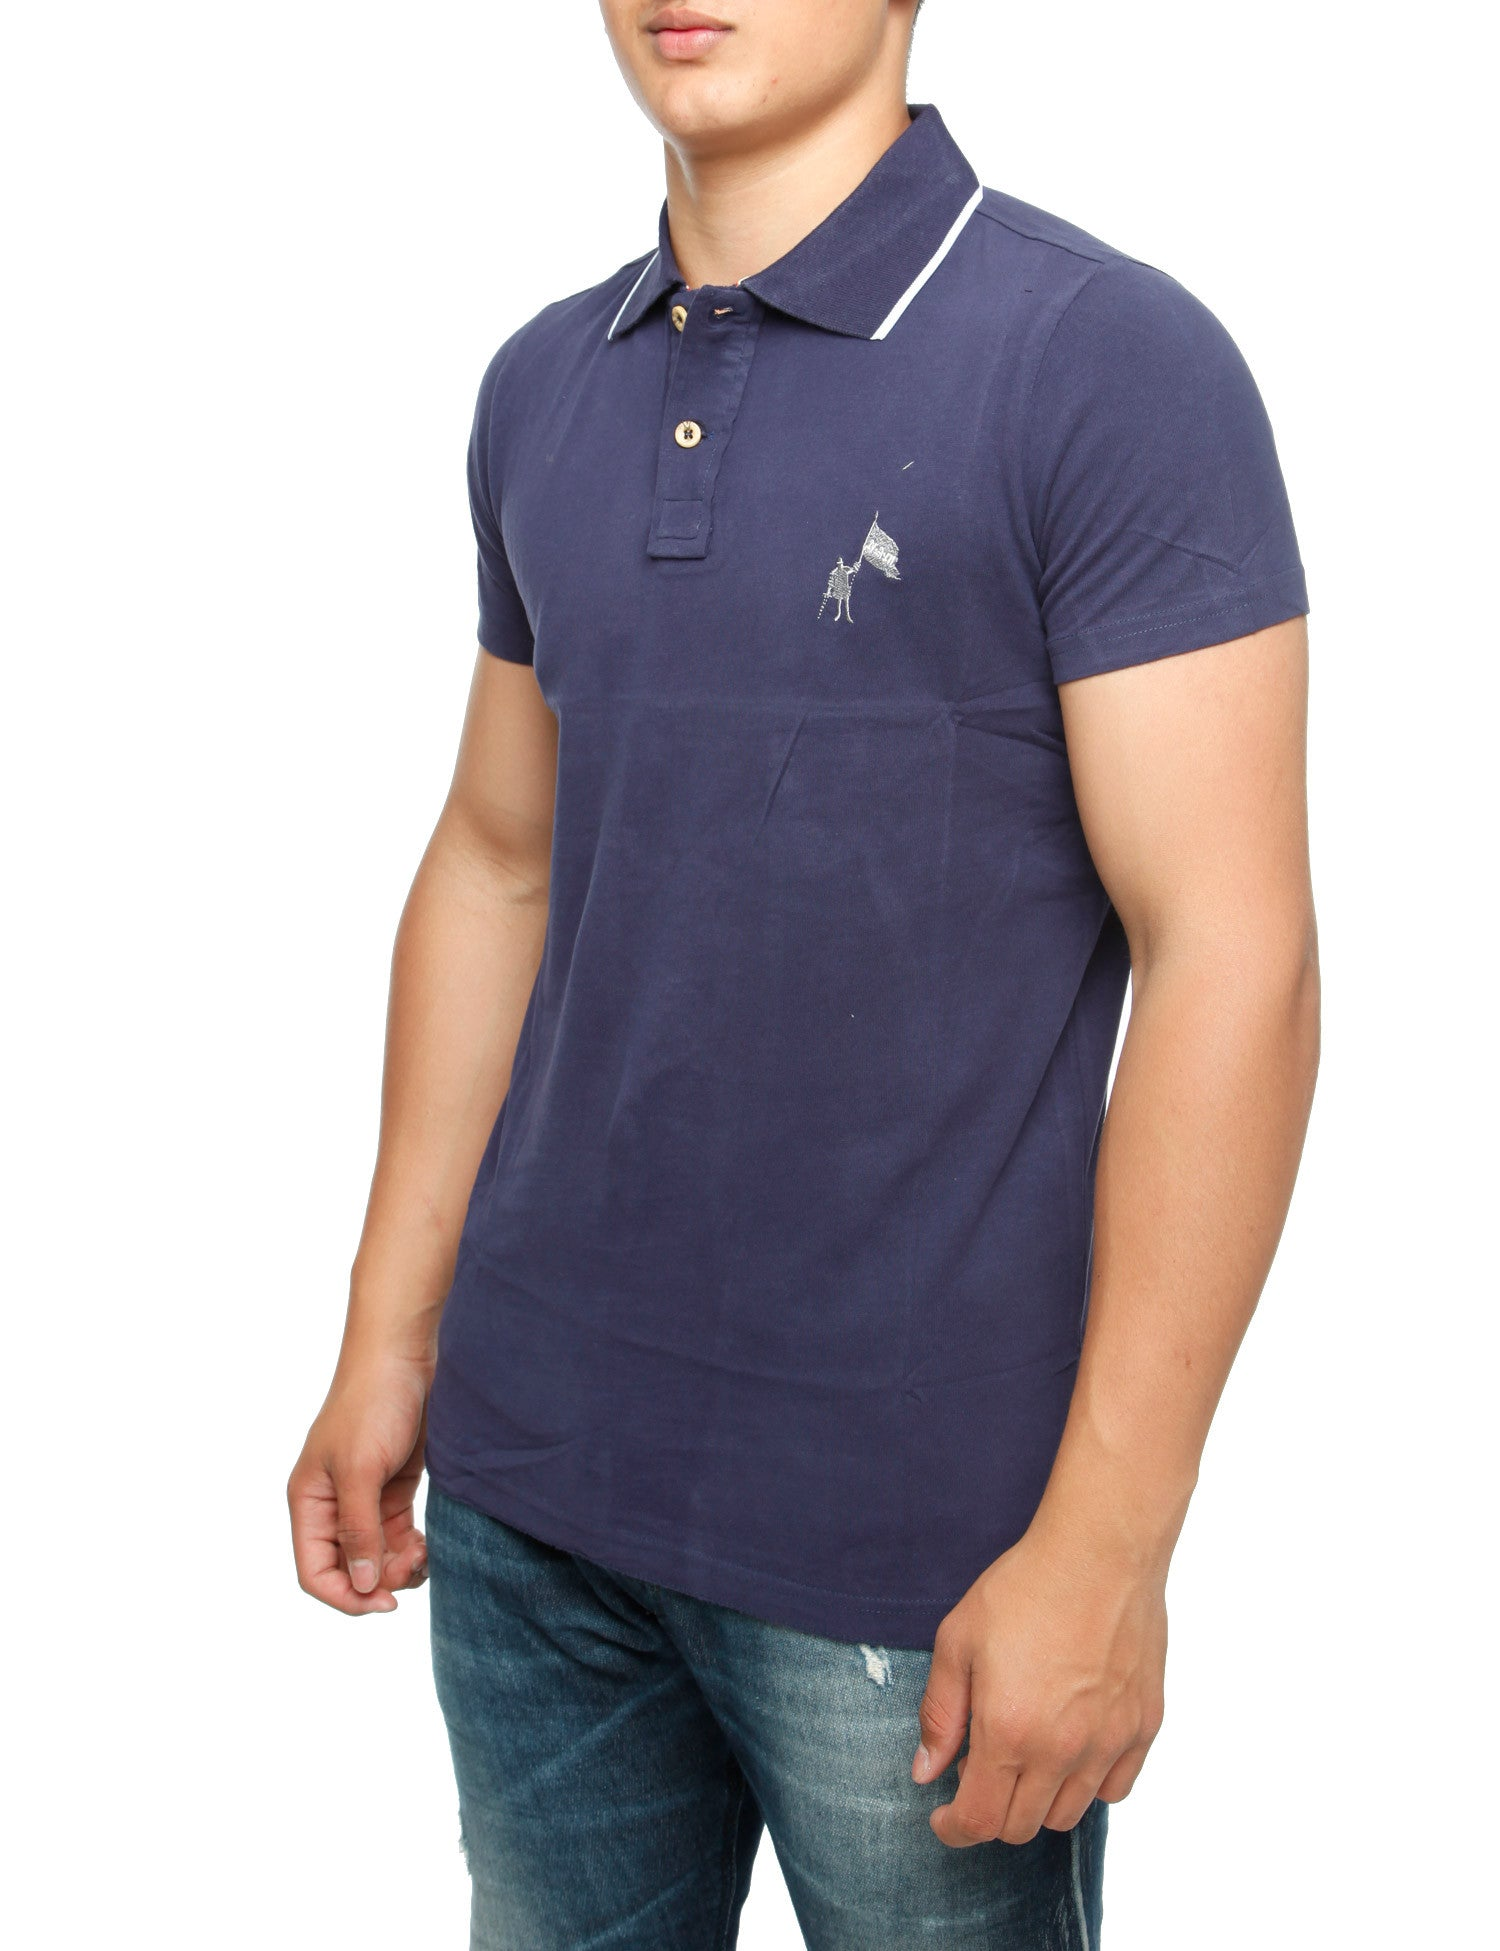 Abaris Del Mar Polo Navy Blue